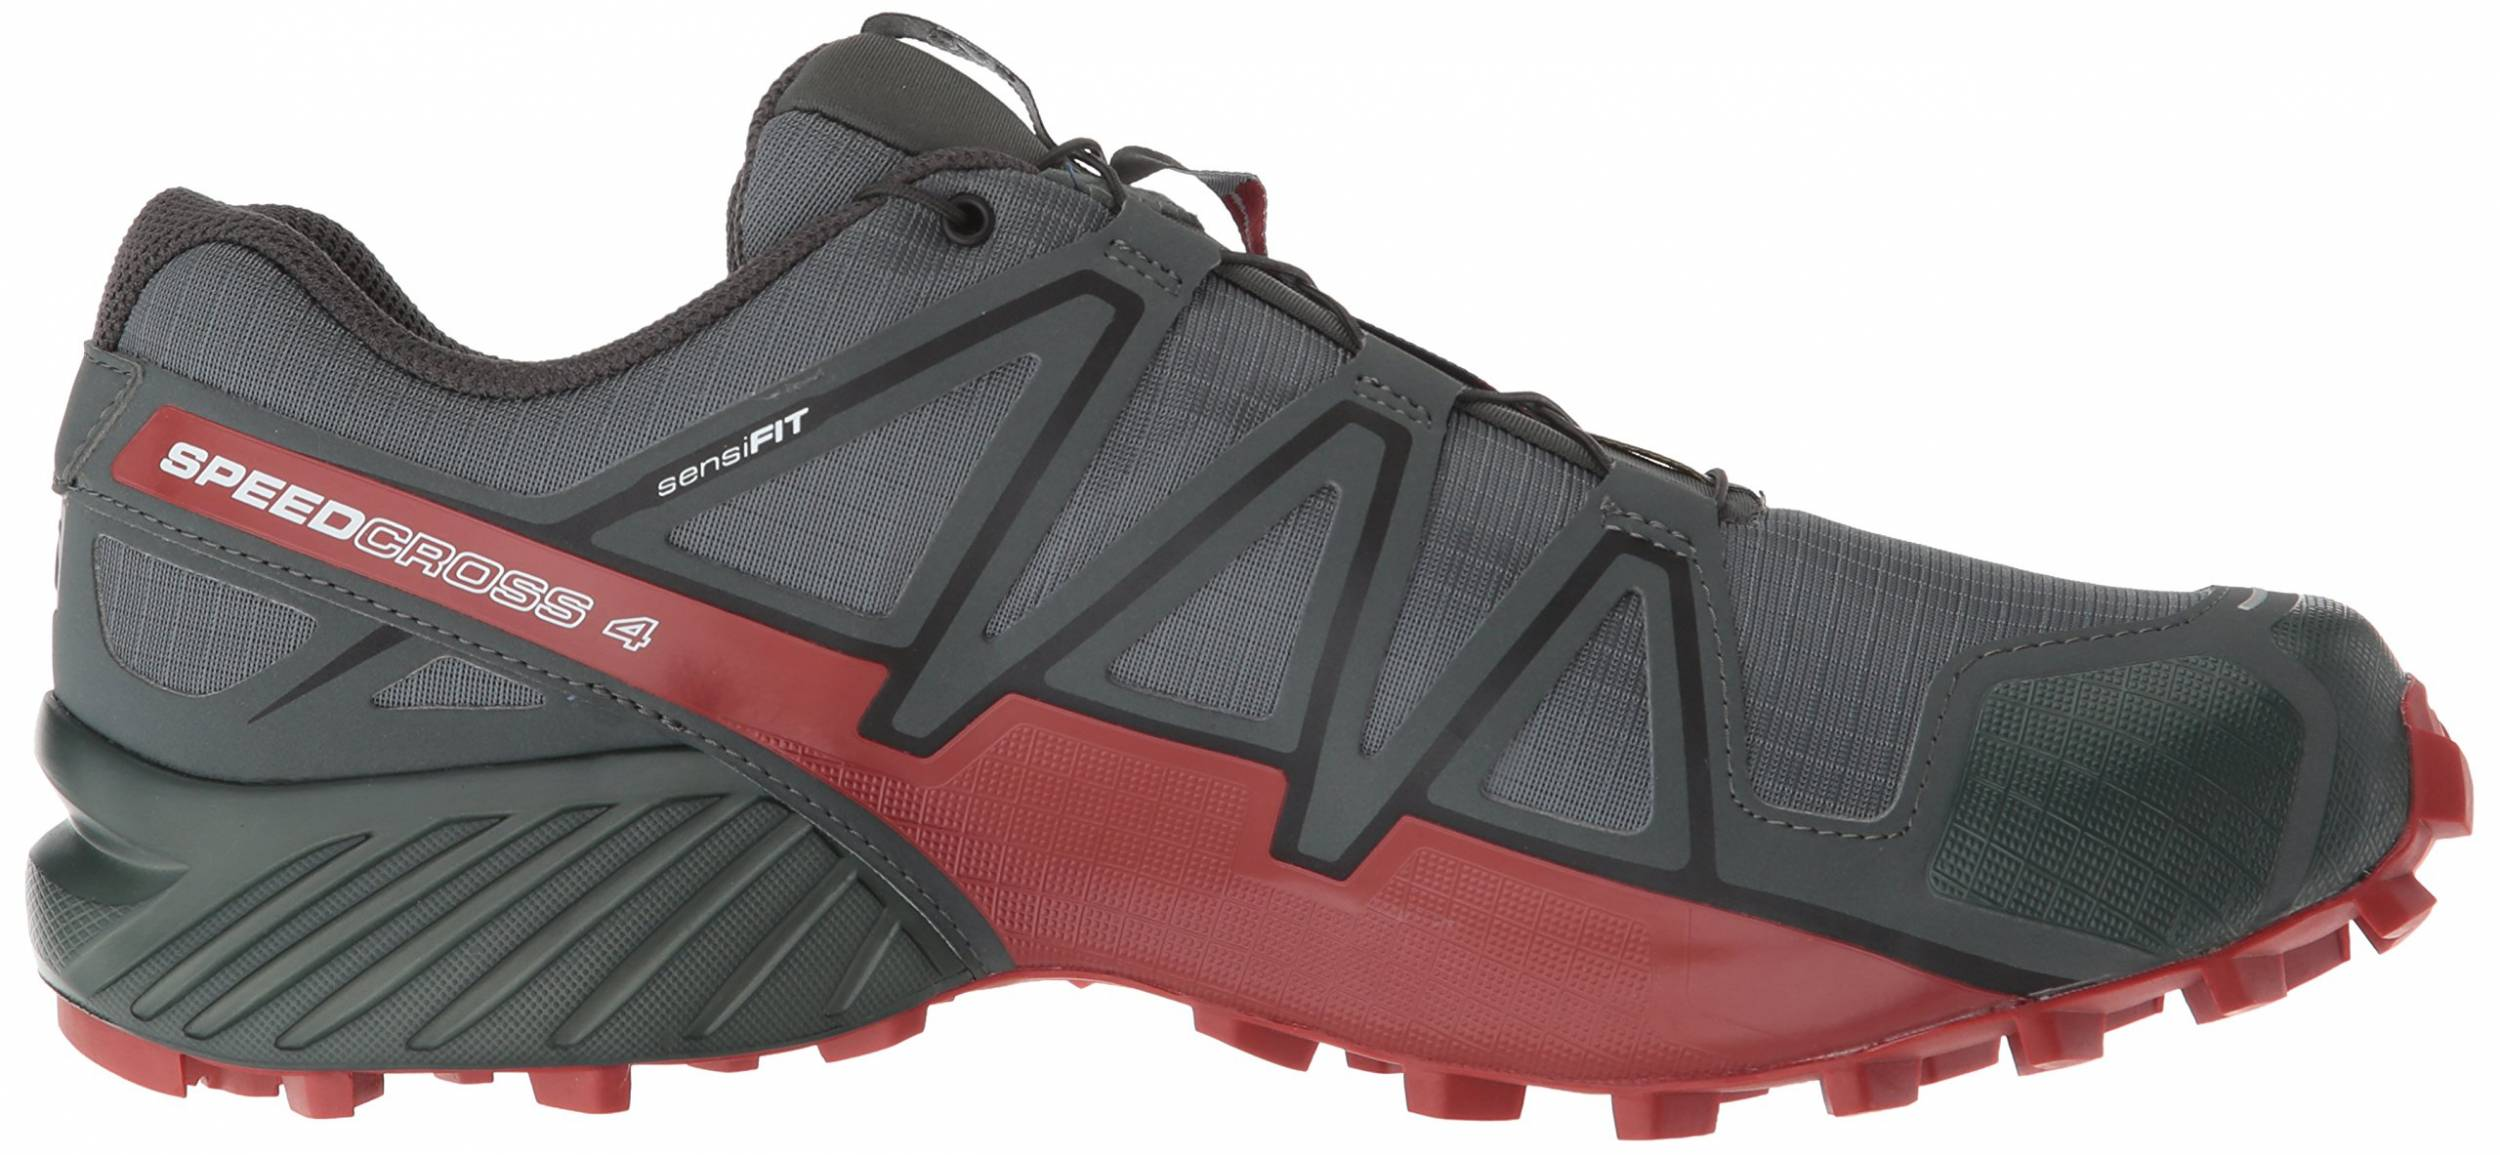 salomon speedcross 4 size 8 test